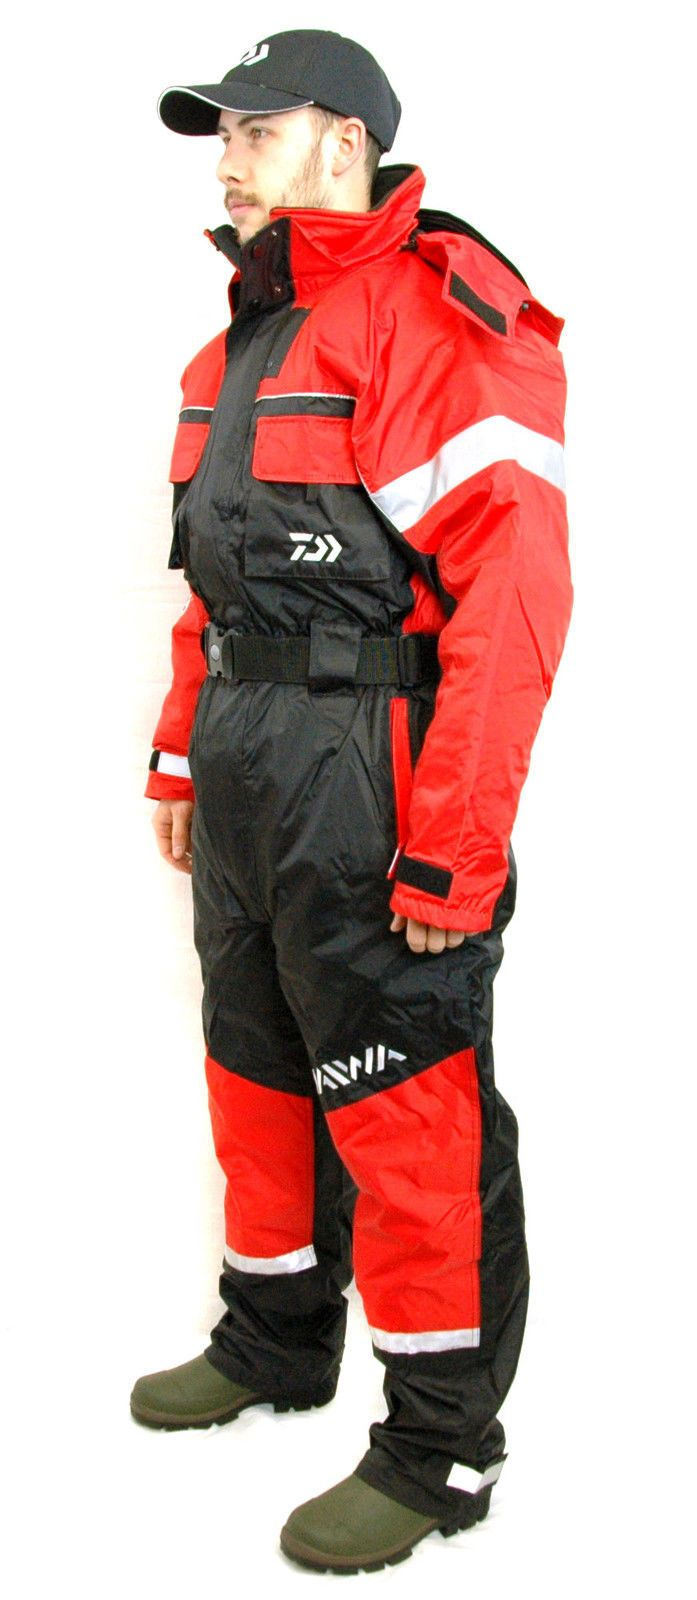 http://www.ebay.co.uk/itm/SPECIAL-OFFER-NEW-DAIWA-SUNDRIDGE-ONE-PIECE-FLOTATION-SUIT-ALL-SIZES-AVAILABLE-/331718859520?var=